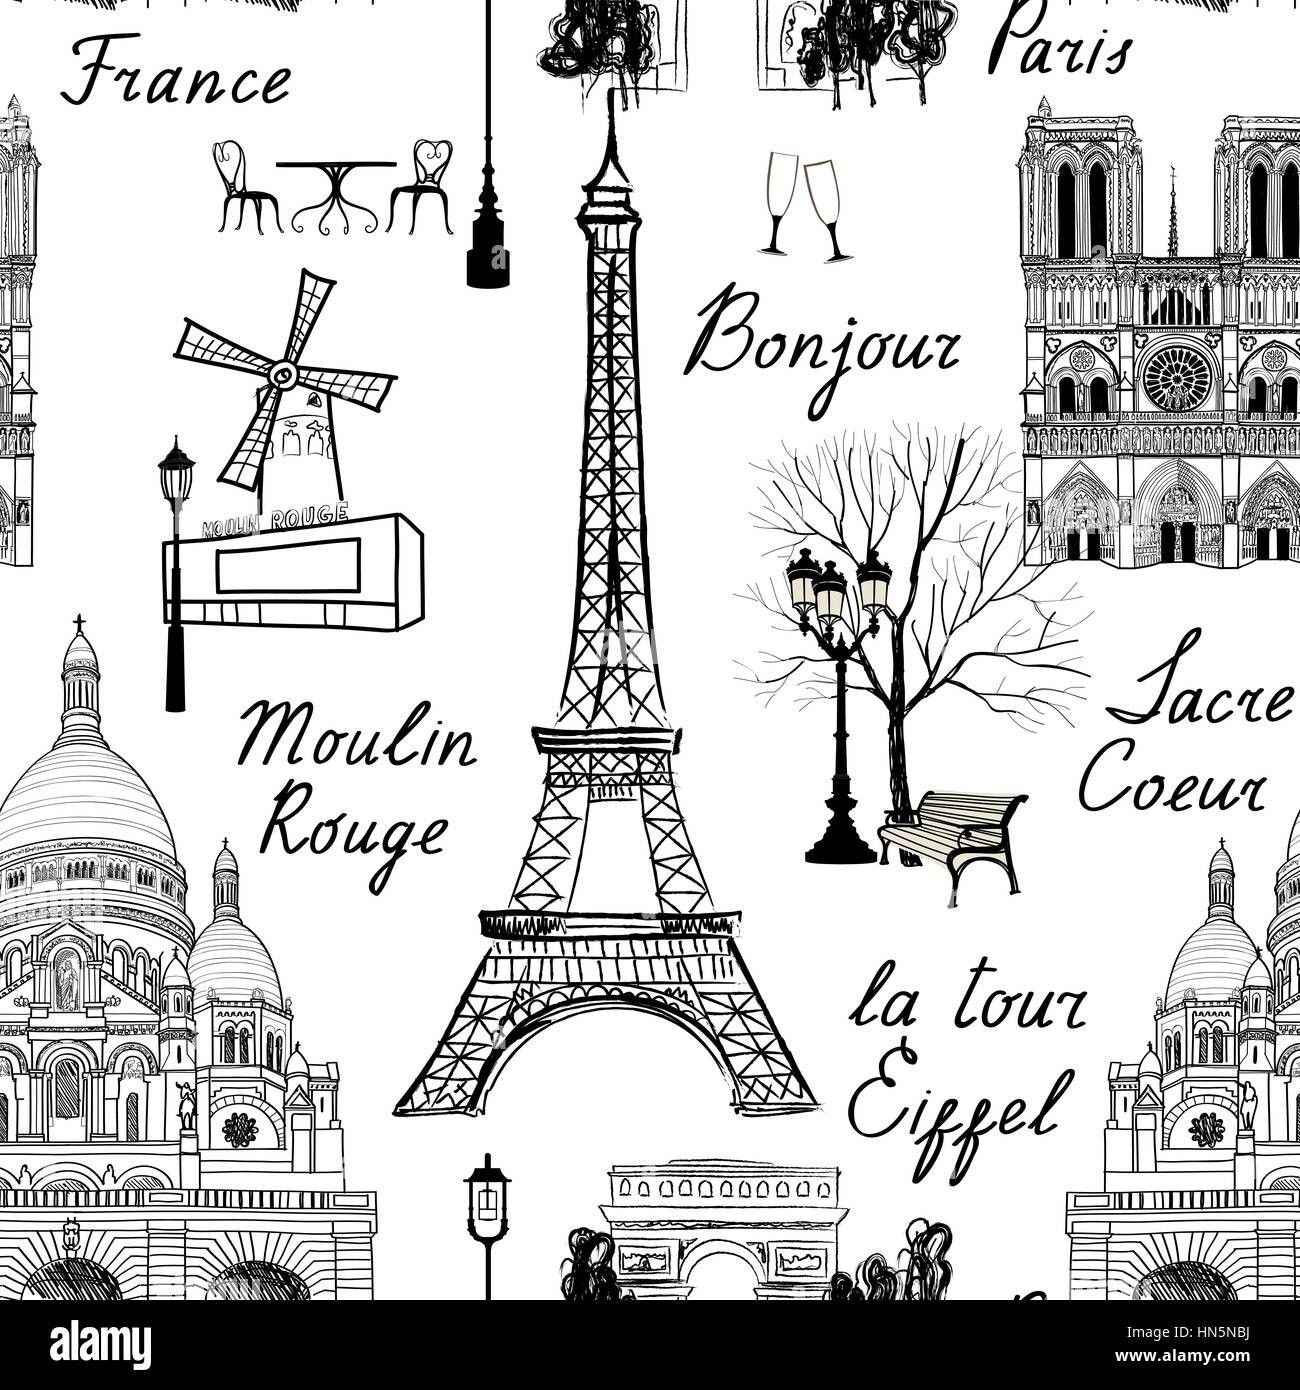 Travel Paris seamless pattern. Vacation in Europe wallpaper. Travel to visit famous places of France background. - Stock Image